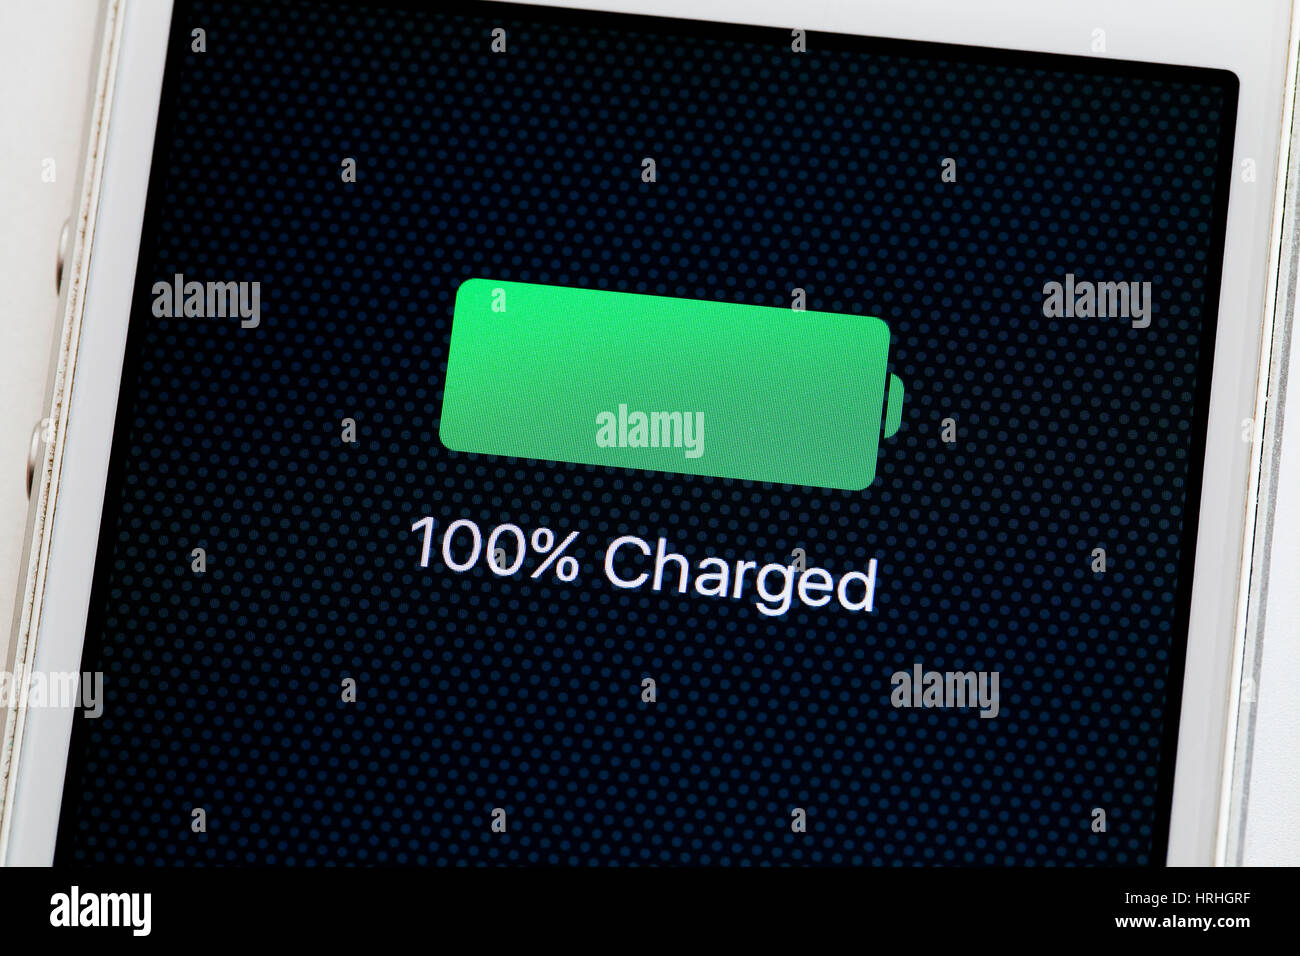 100% battery charge message on iPhone screen (full charg icon) -USA - Stock Image